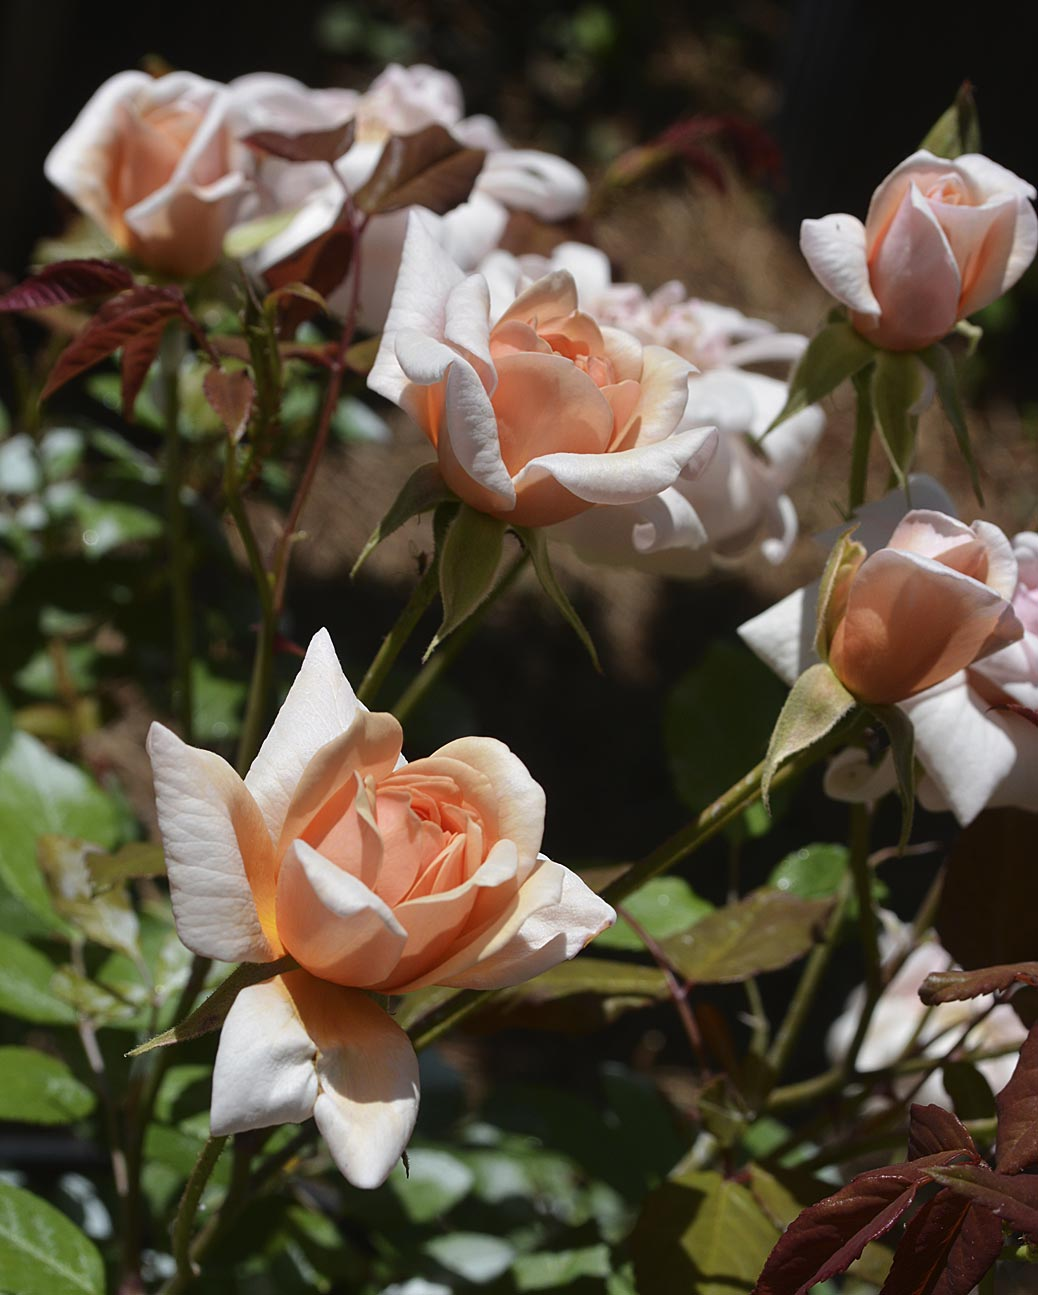 Perle d'Or garden rose